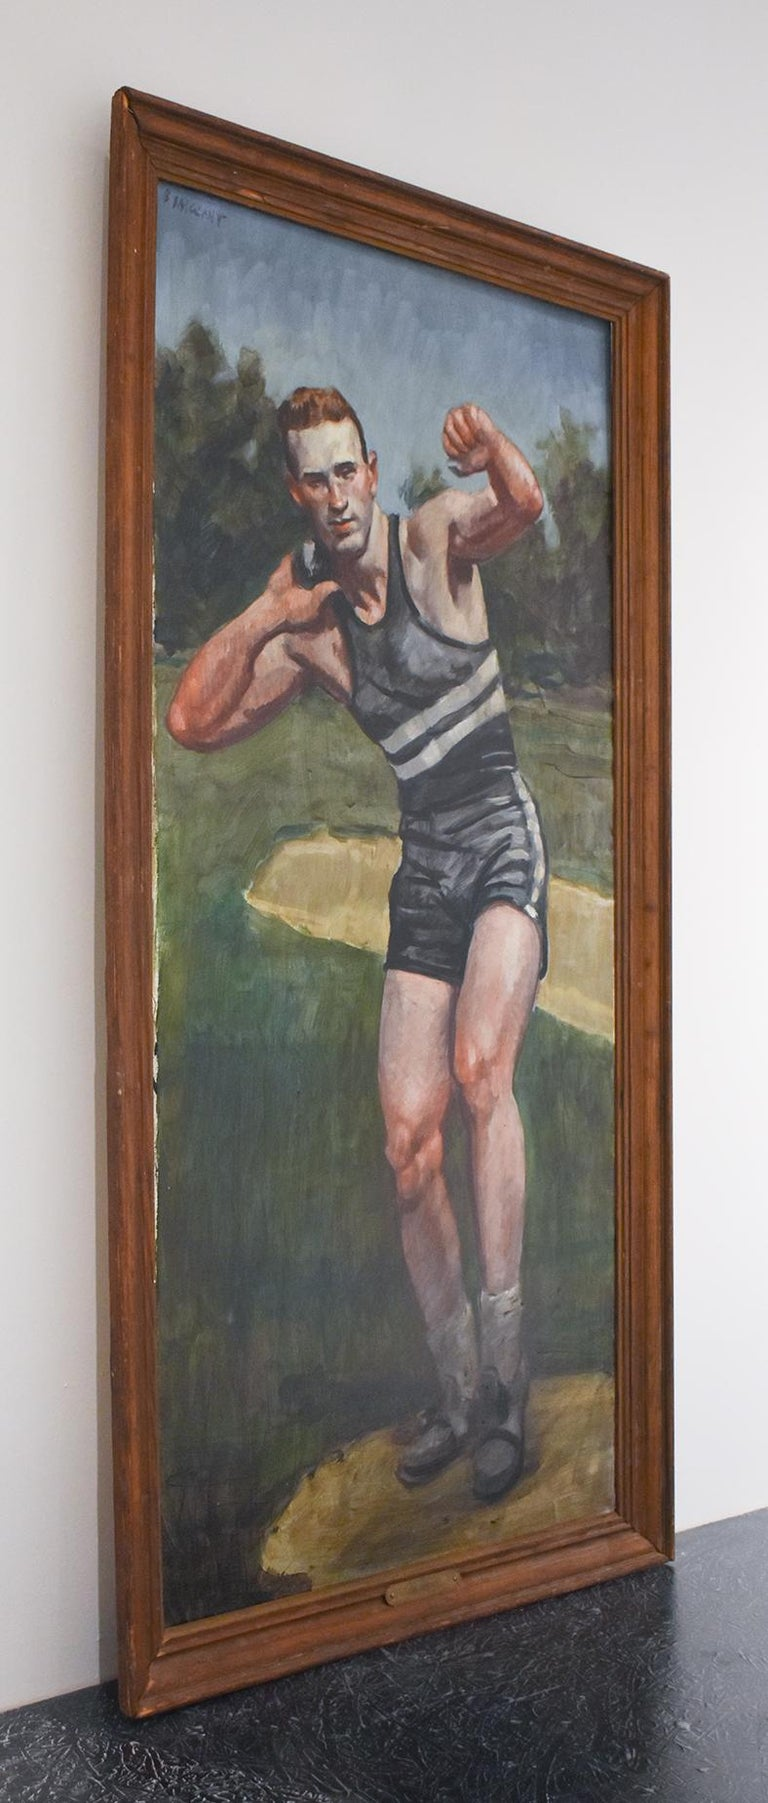 Shot put: Framed Figurative Oil Painting on Canvas of Male Athlete by Mark Beard For Sale 1